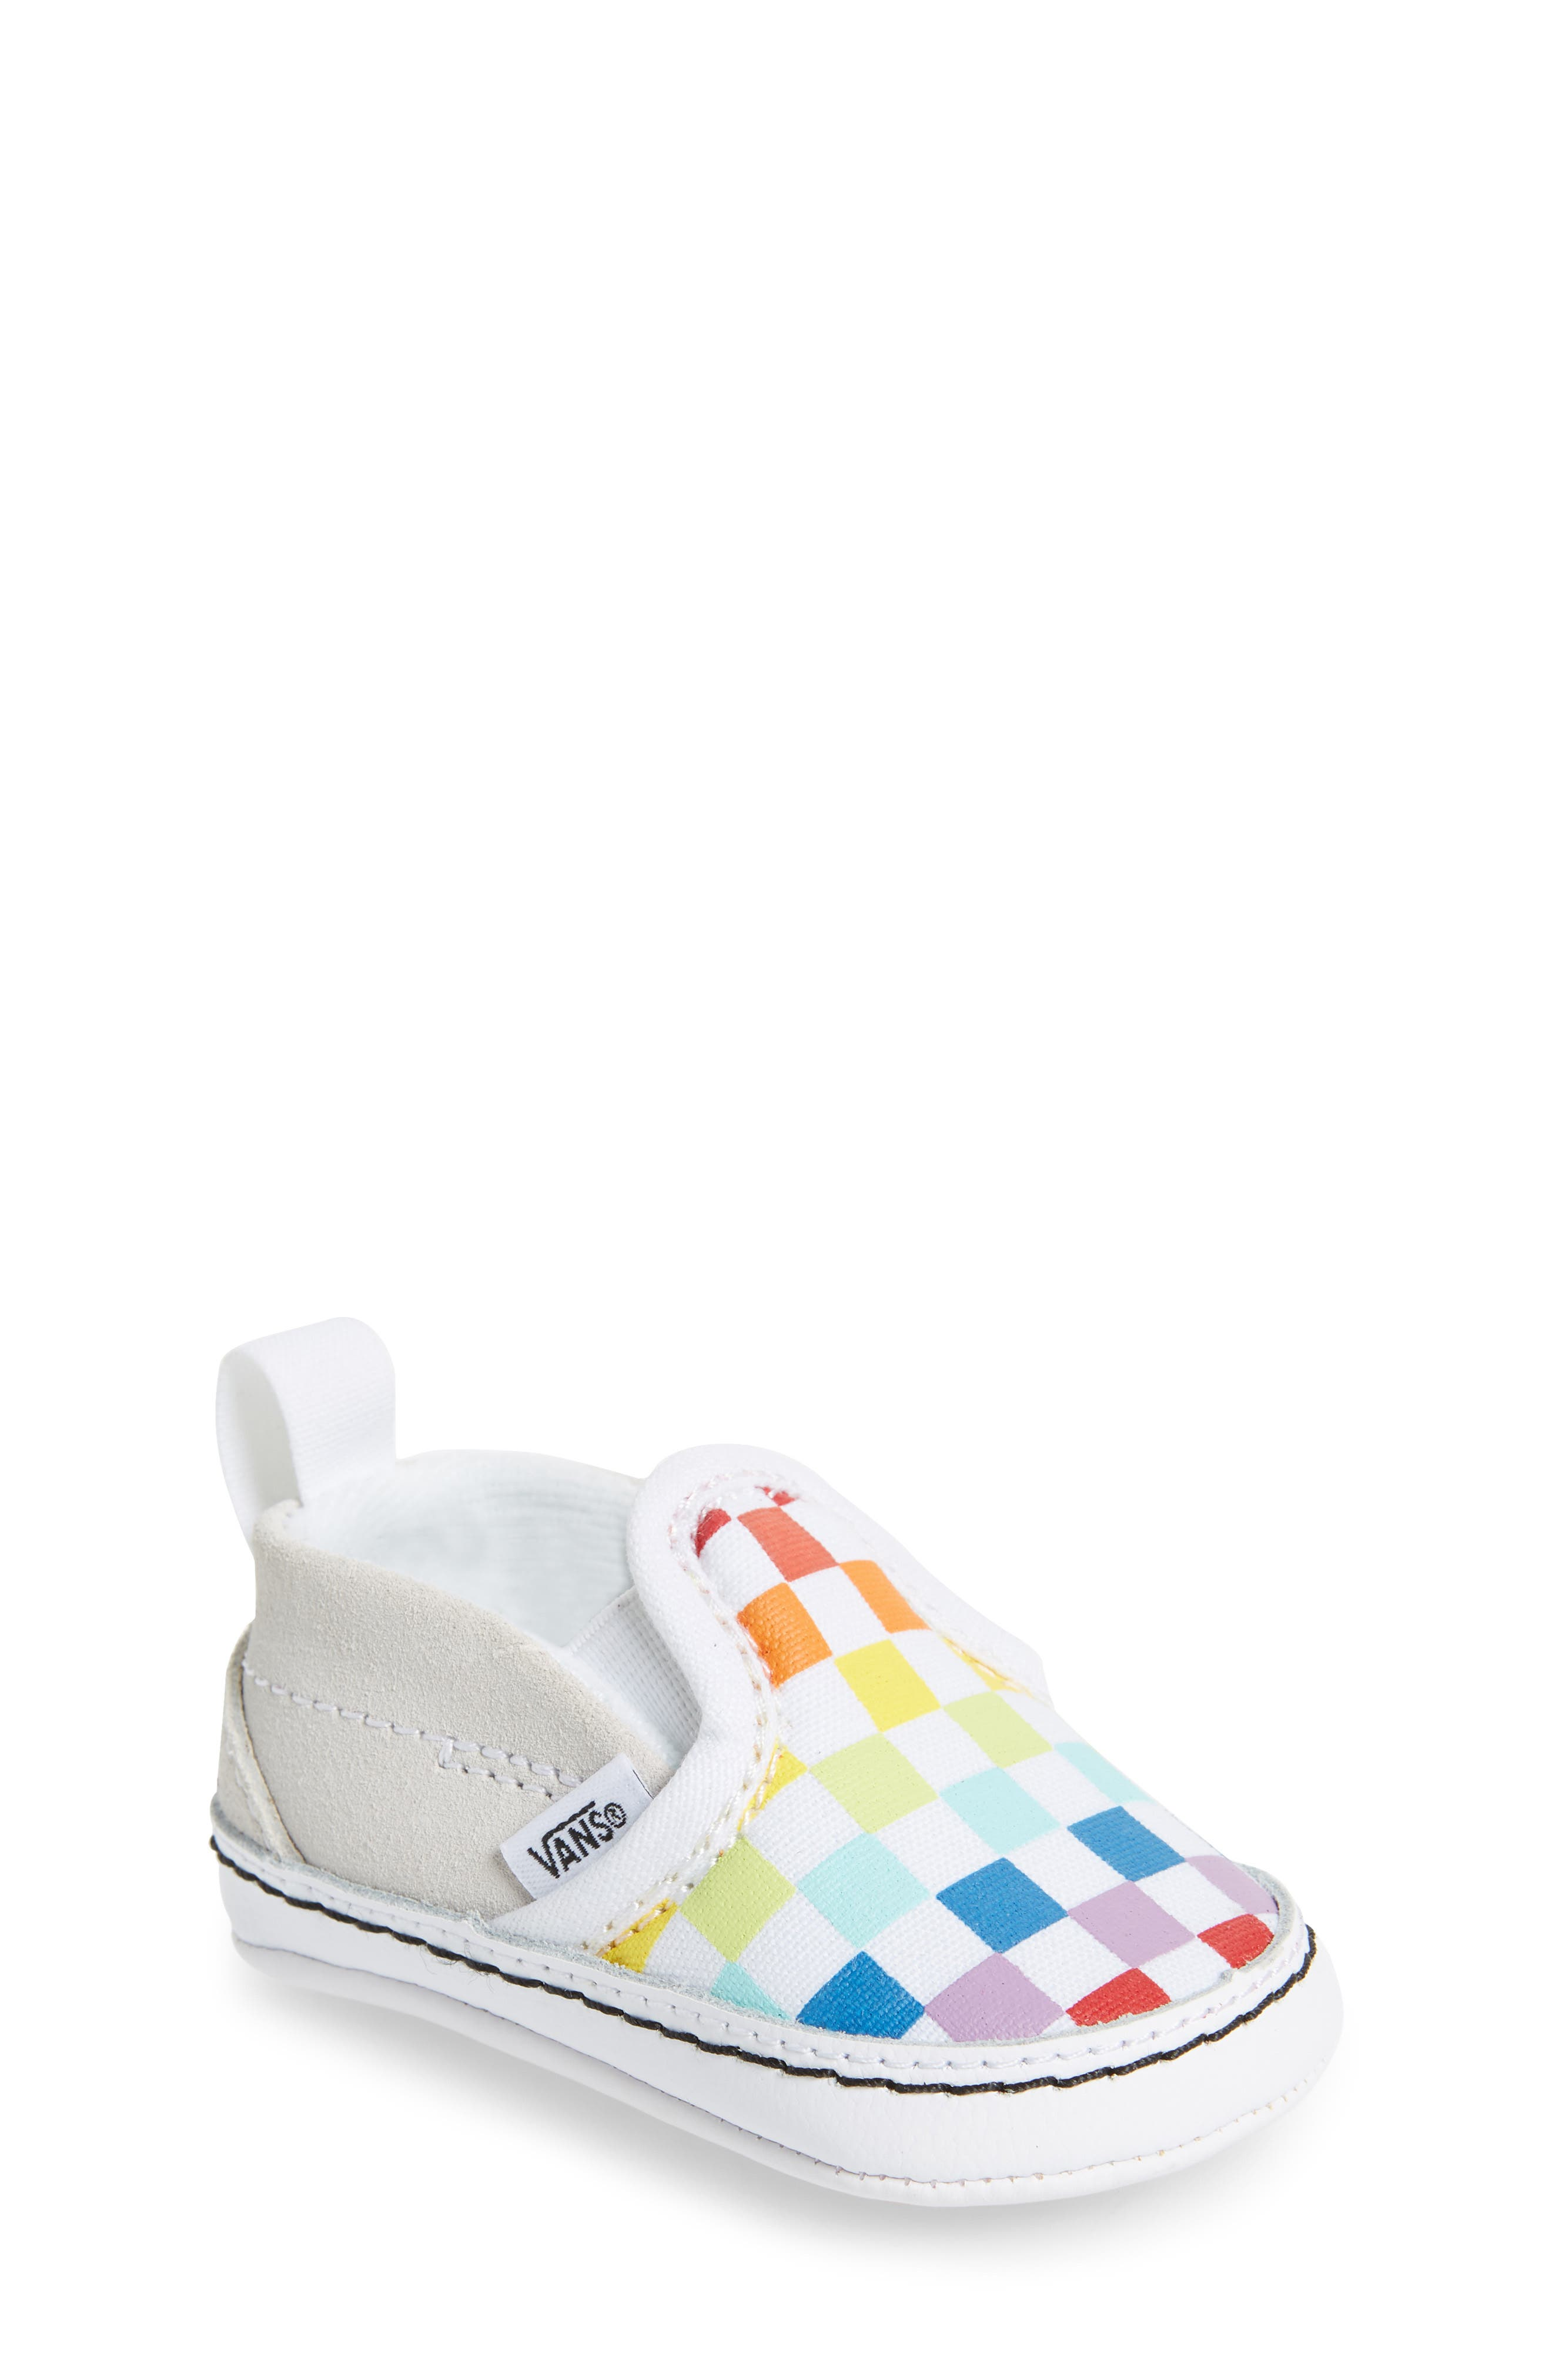 VANS, Slip-On Crib Shoe, Main thumbnail 1, color, CHECKERBOARD RAINBOW/ WHITE